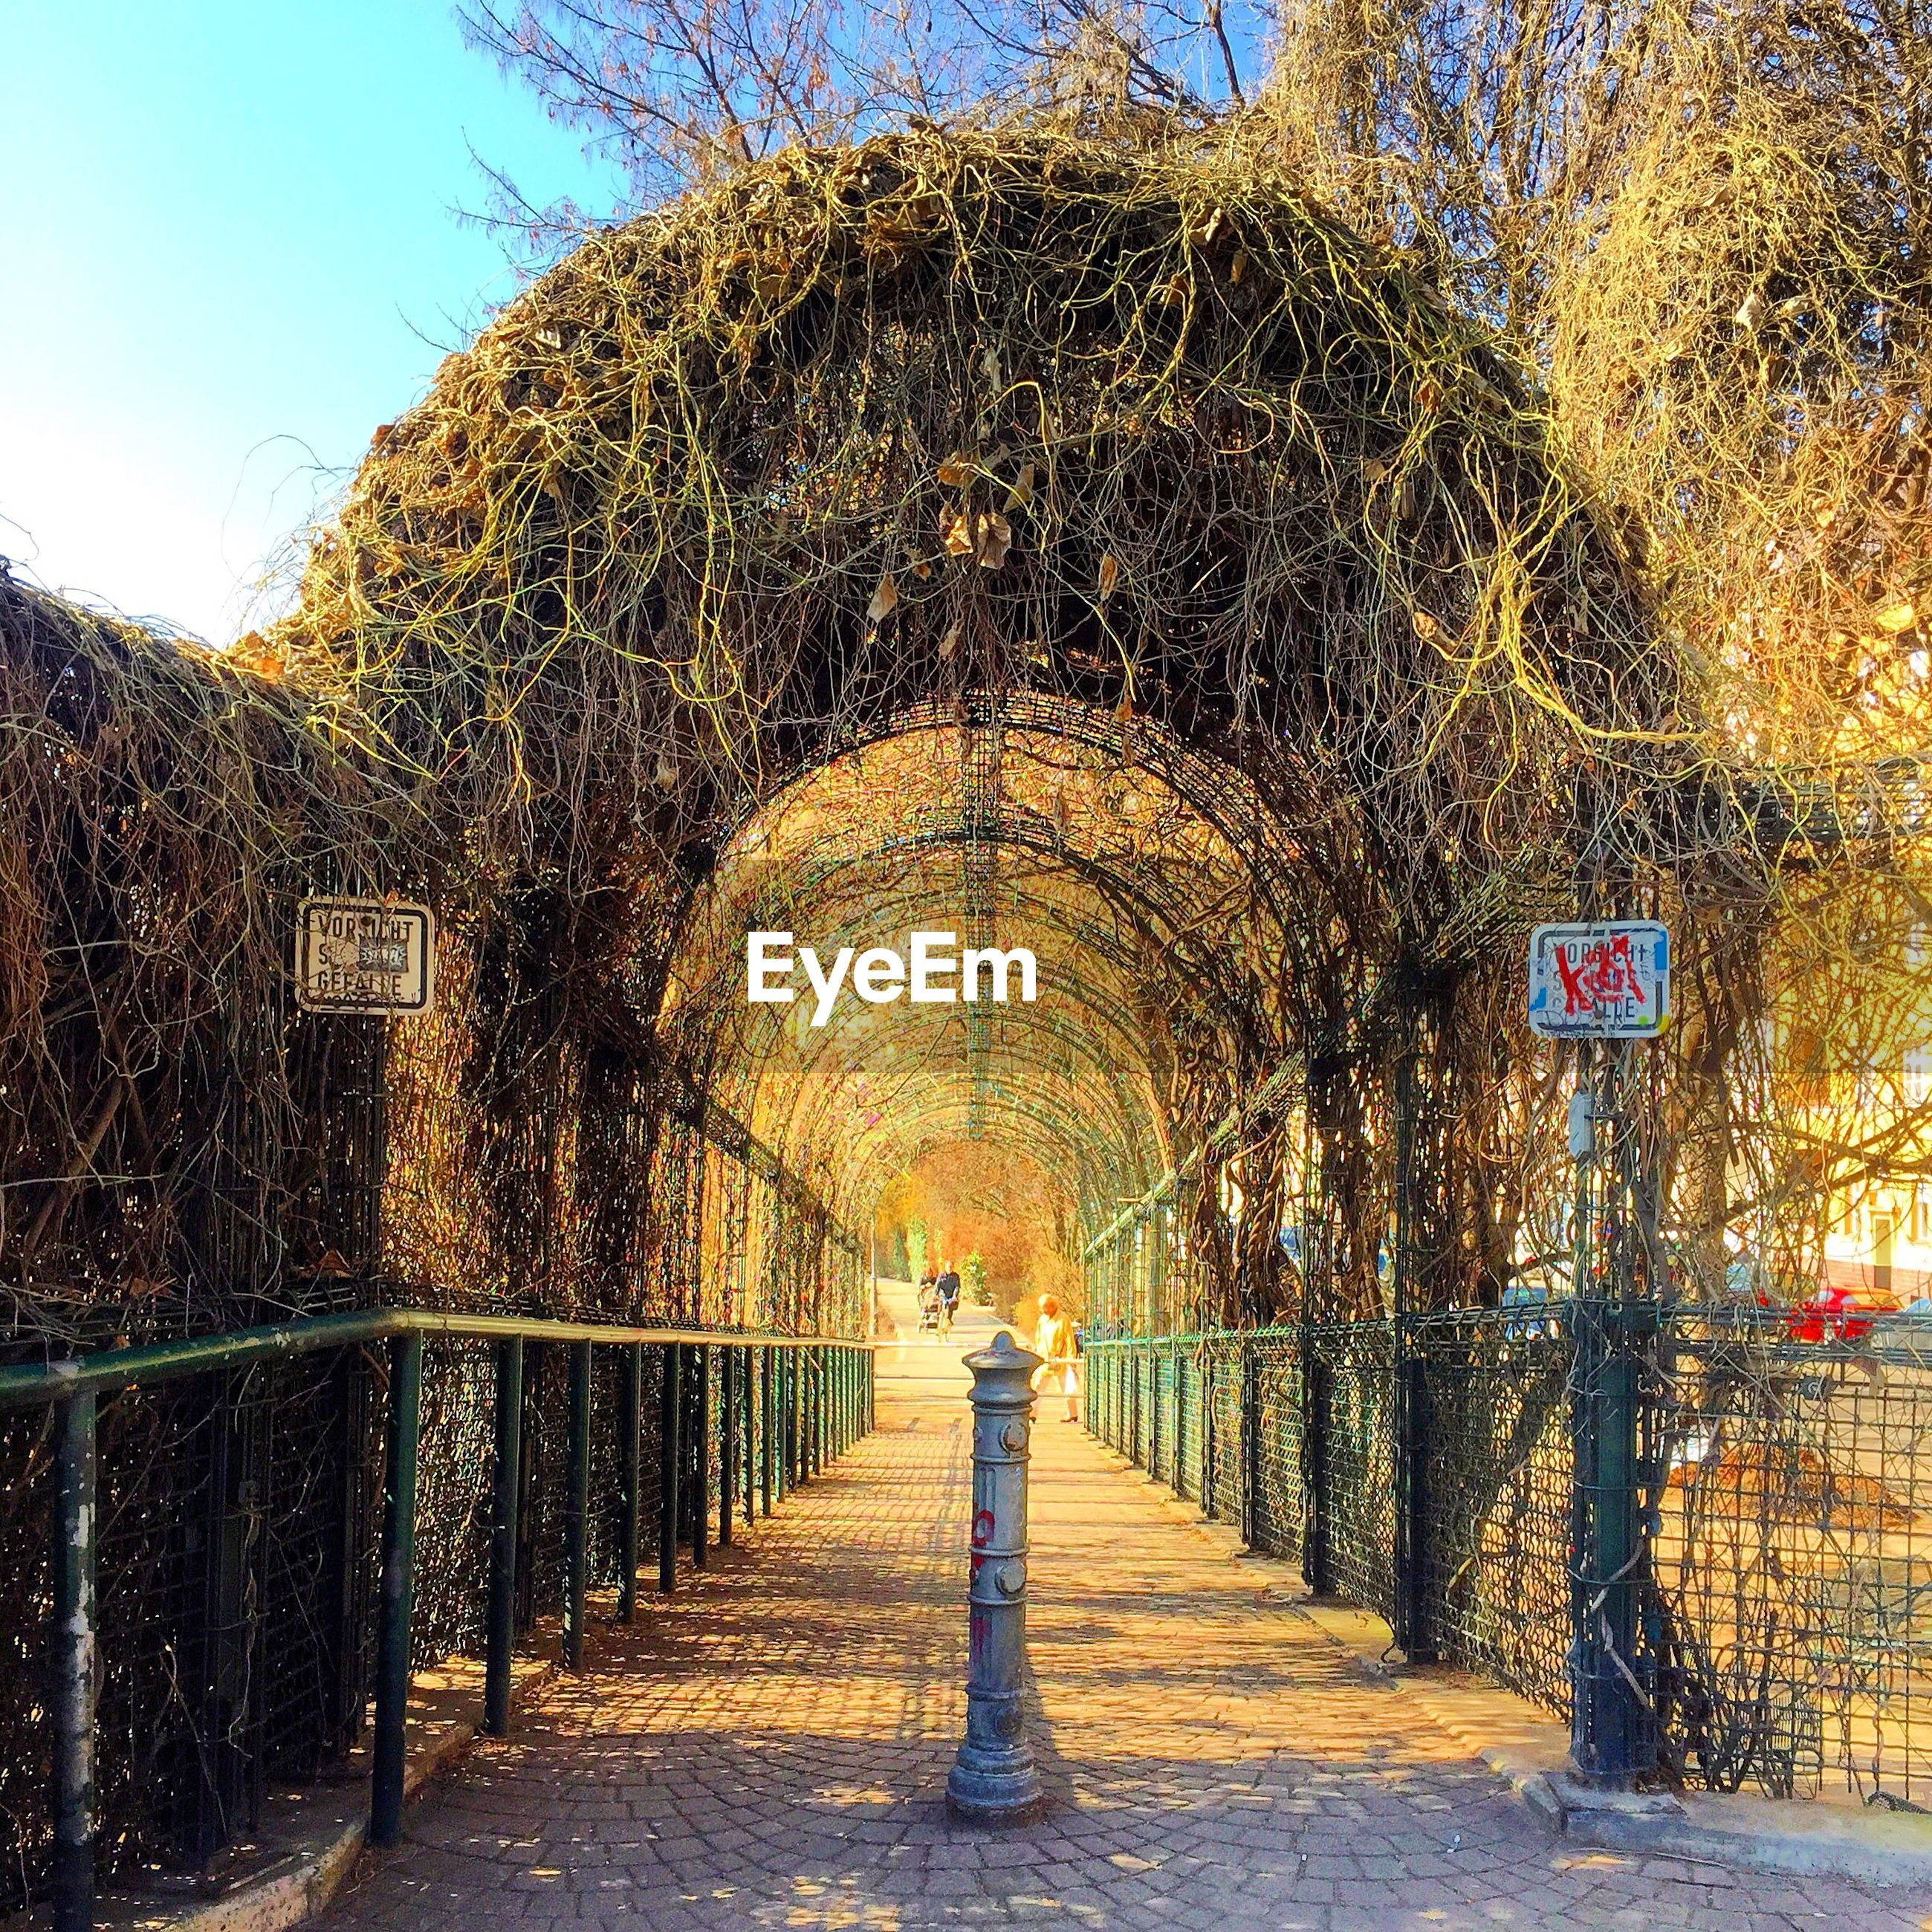 Arched ceiling covered with ivy in park